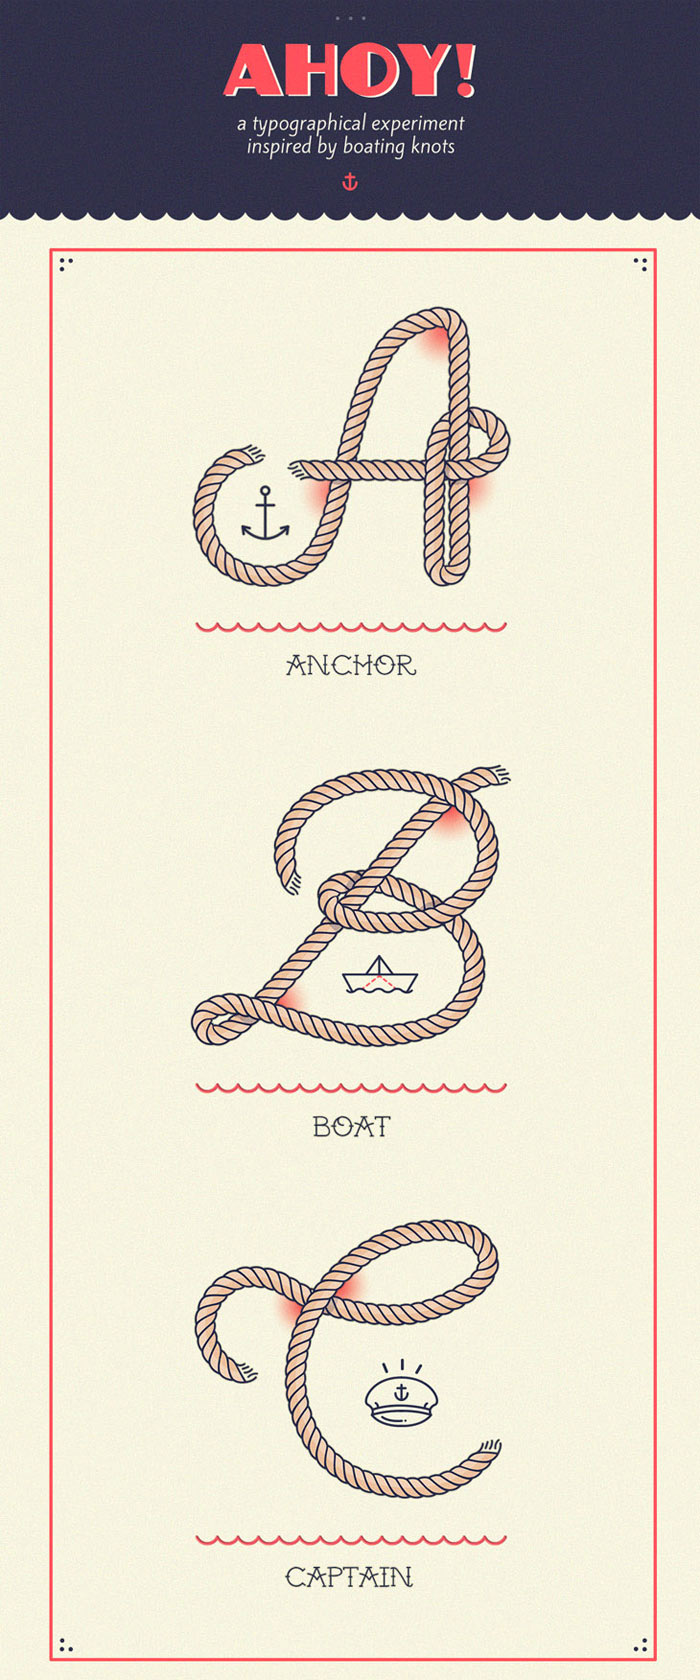 Lorena G / Hand-drawn type series